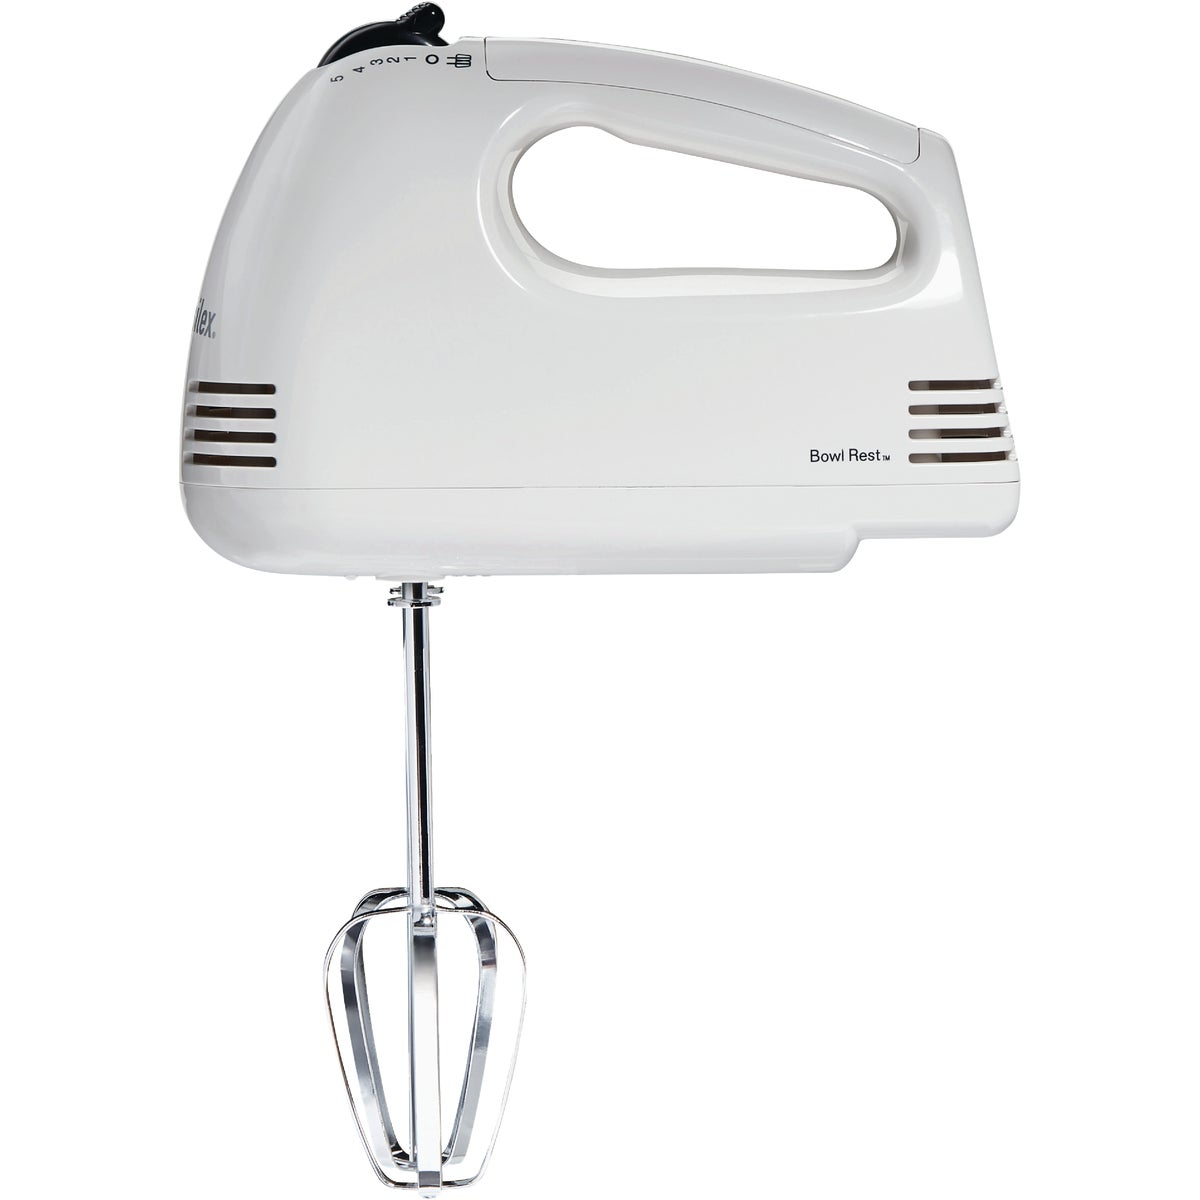 5 SPEED HAND MIXER - 62515RY by Hamilton Beach Brand